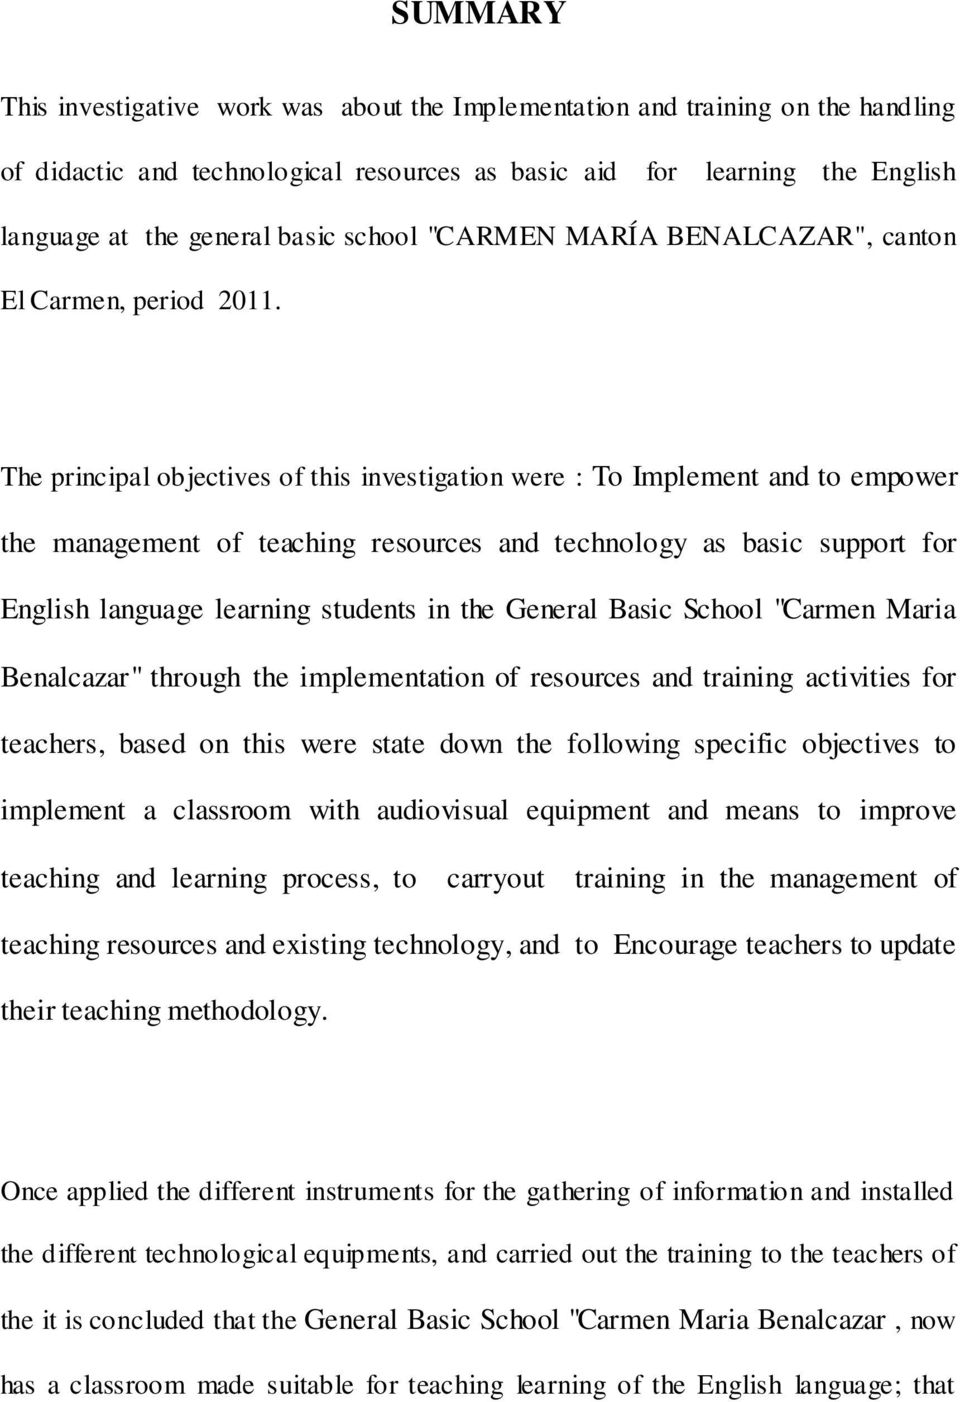 The principal objectives of this investigation were : To Implement and to empower the management of teaching resources and technology as basic support for English language learning students in the